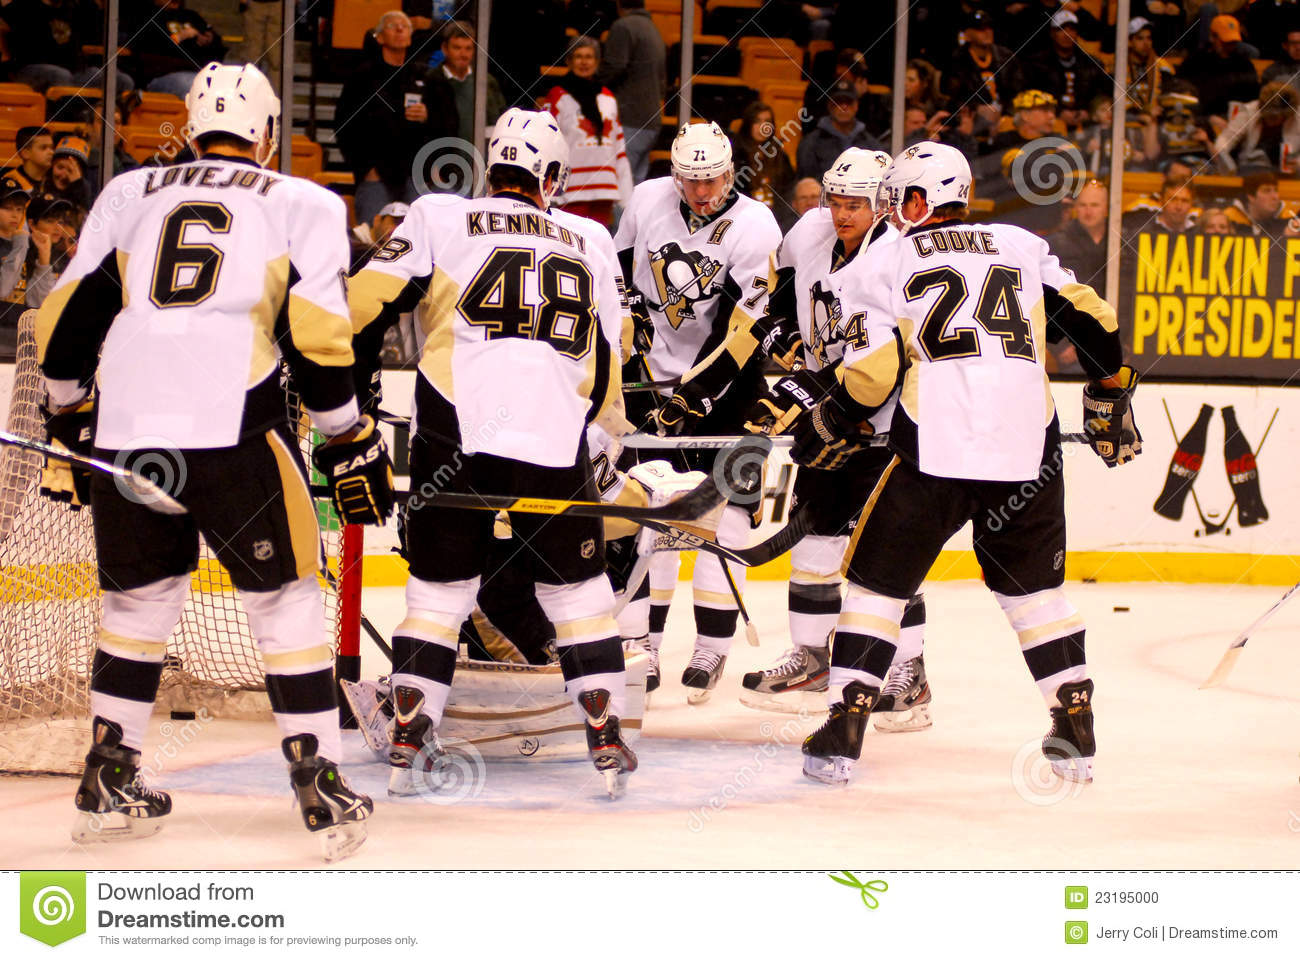 the pittsburgh penguins and the national hockey league The pittsburgh penguins are an american professional ice hockey team based in pittsburgh, pennsylvania, that competes in the national hockey league (nhl) they are members of the league's metropolitan division of the eastern conference.